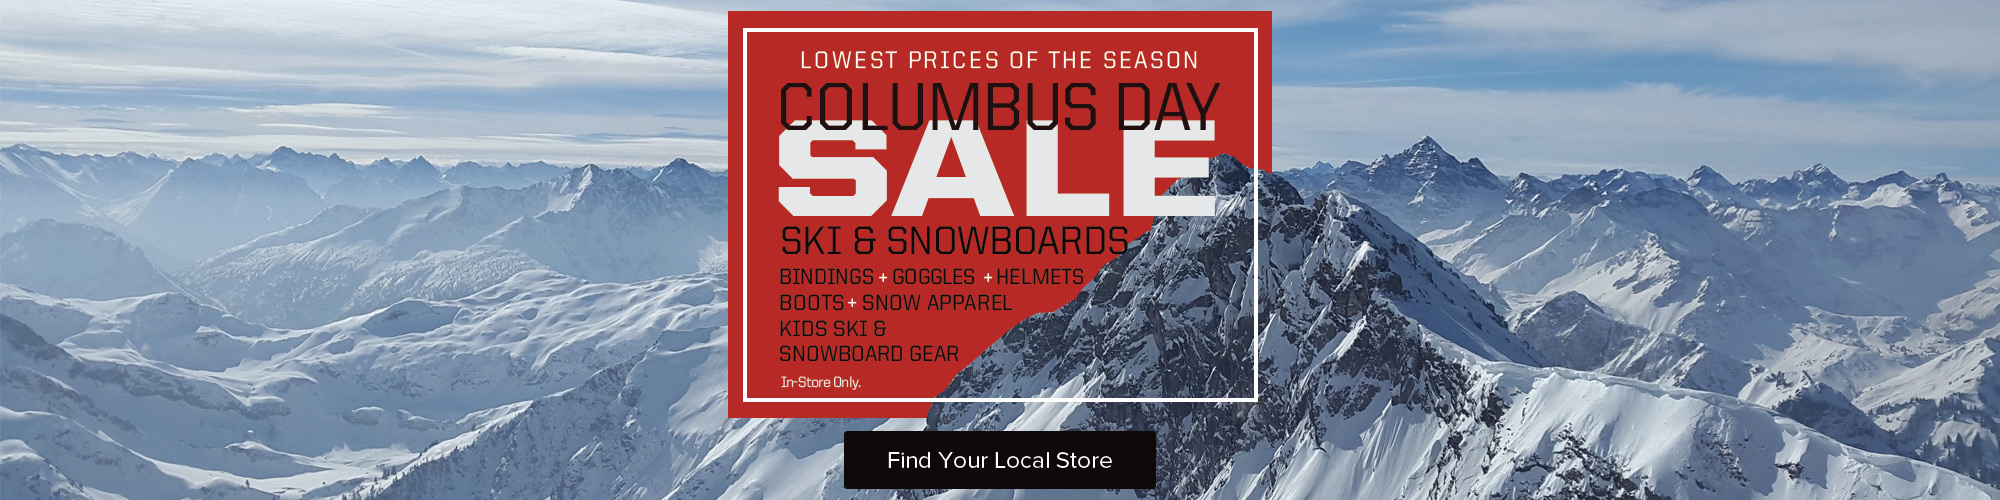 Columbus Day Sale. Lowest Prices on the Season on Skis, Snowboards, Winter Gear and More. In-Store Only. View Details